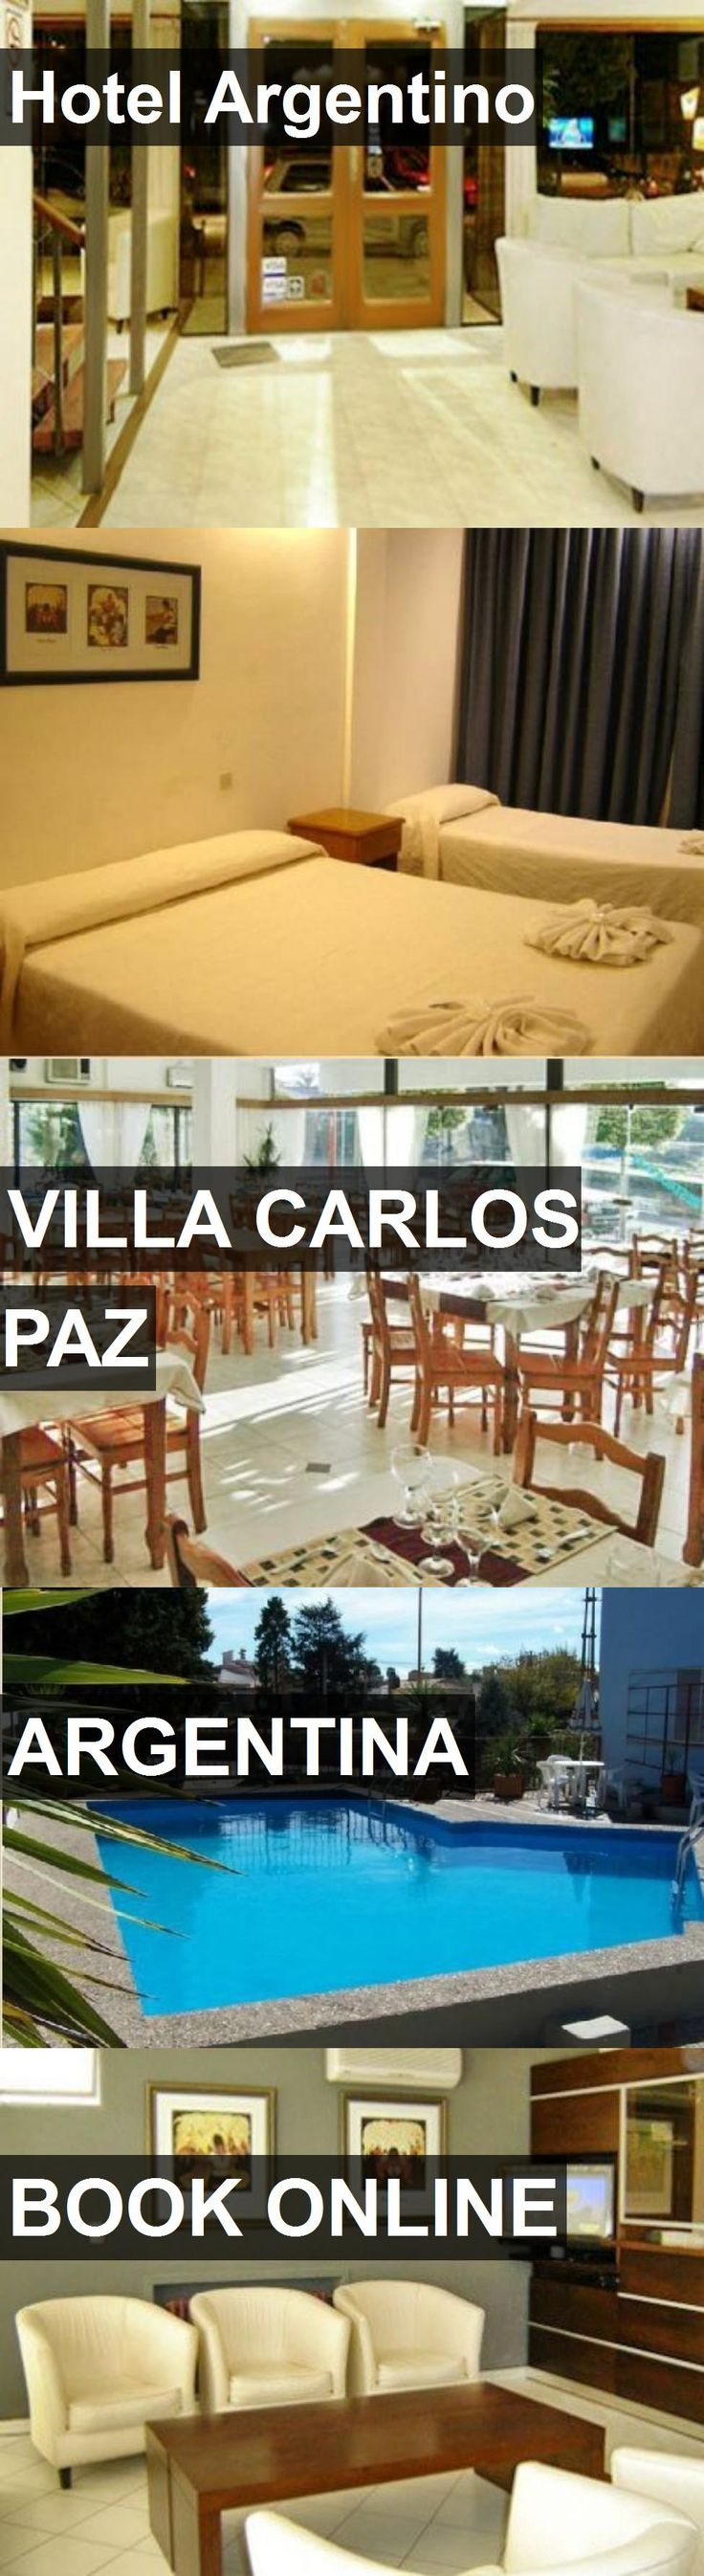 Hotel Argentino in Villa Carlos Paz, Argentina. For more information, photos, reviews and best prices please follow the link. #Argentina #VillaCarlosPaz #travel #vacation #hotel